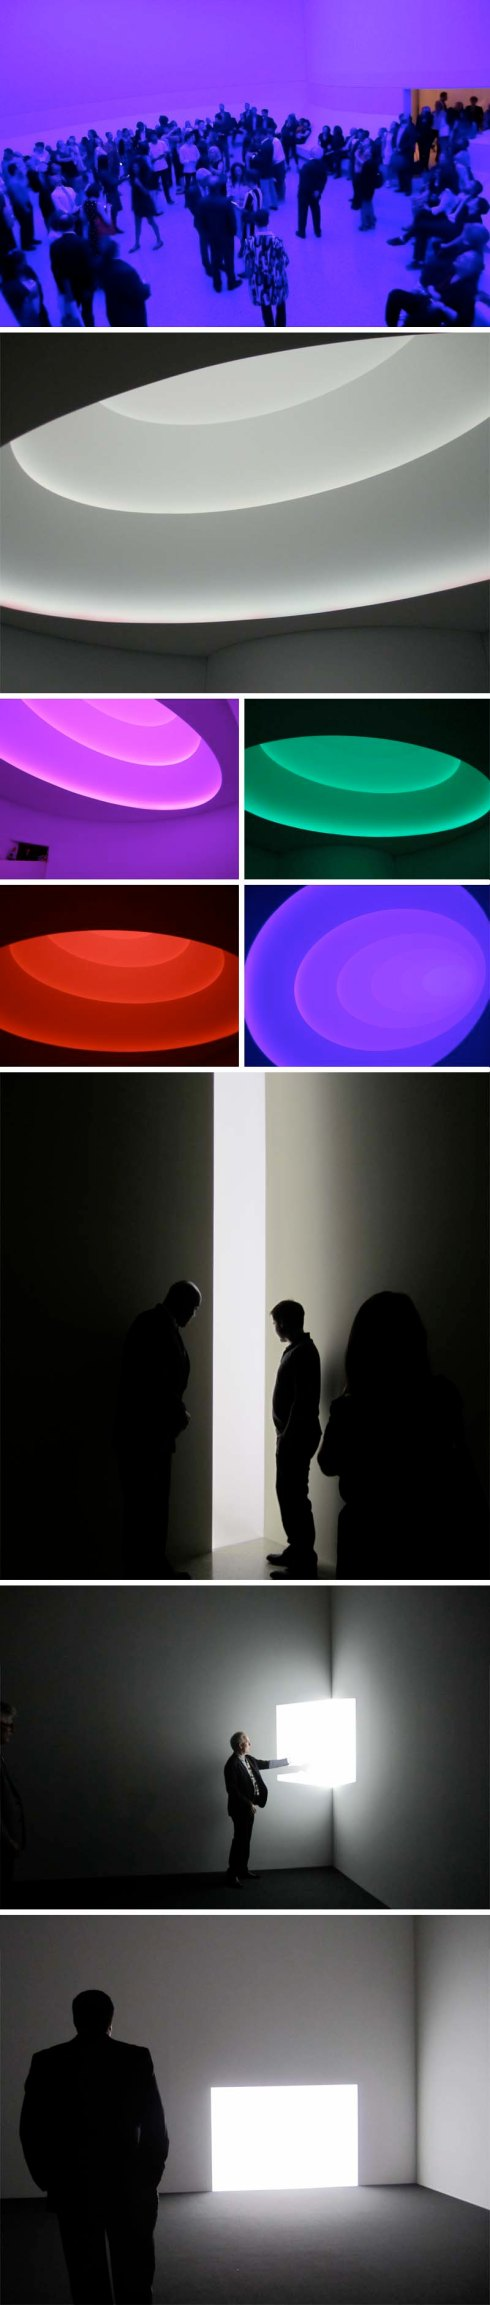 James Turrell Guggenheim, Aten Reign, Elliptical Skyspace, Guggenheim Rotunda, cool light installation